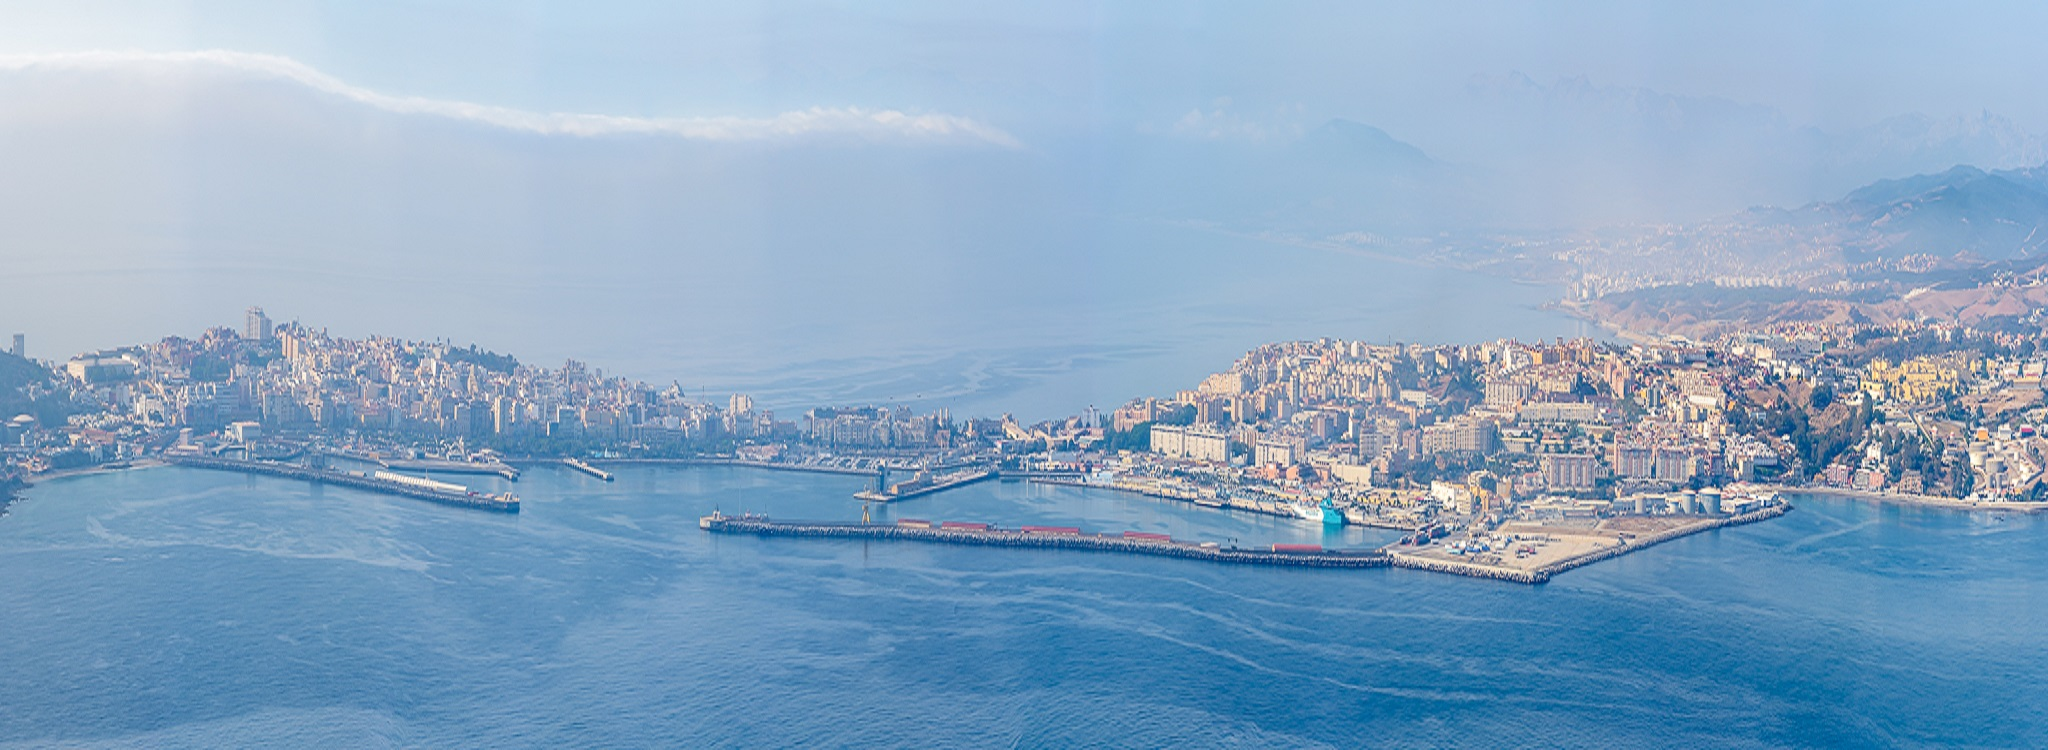 Helicopter flights to Ceuta from Gibraltar